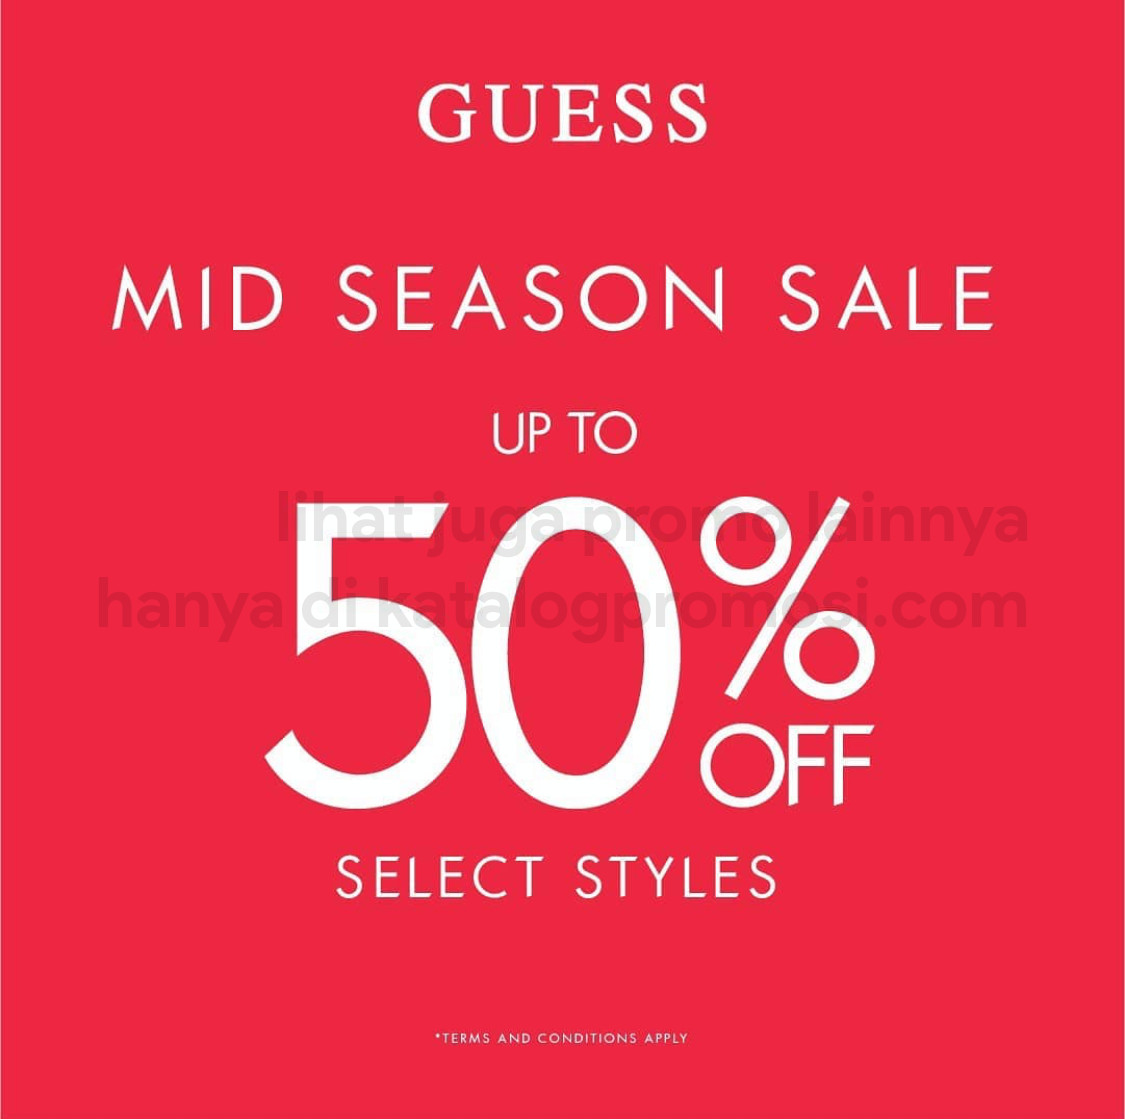 Promo GUESS MID SEASON SALE - DISCOUNT up to 50% off